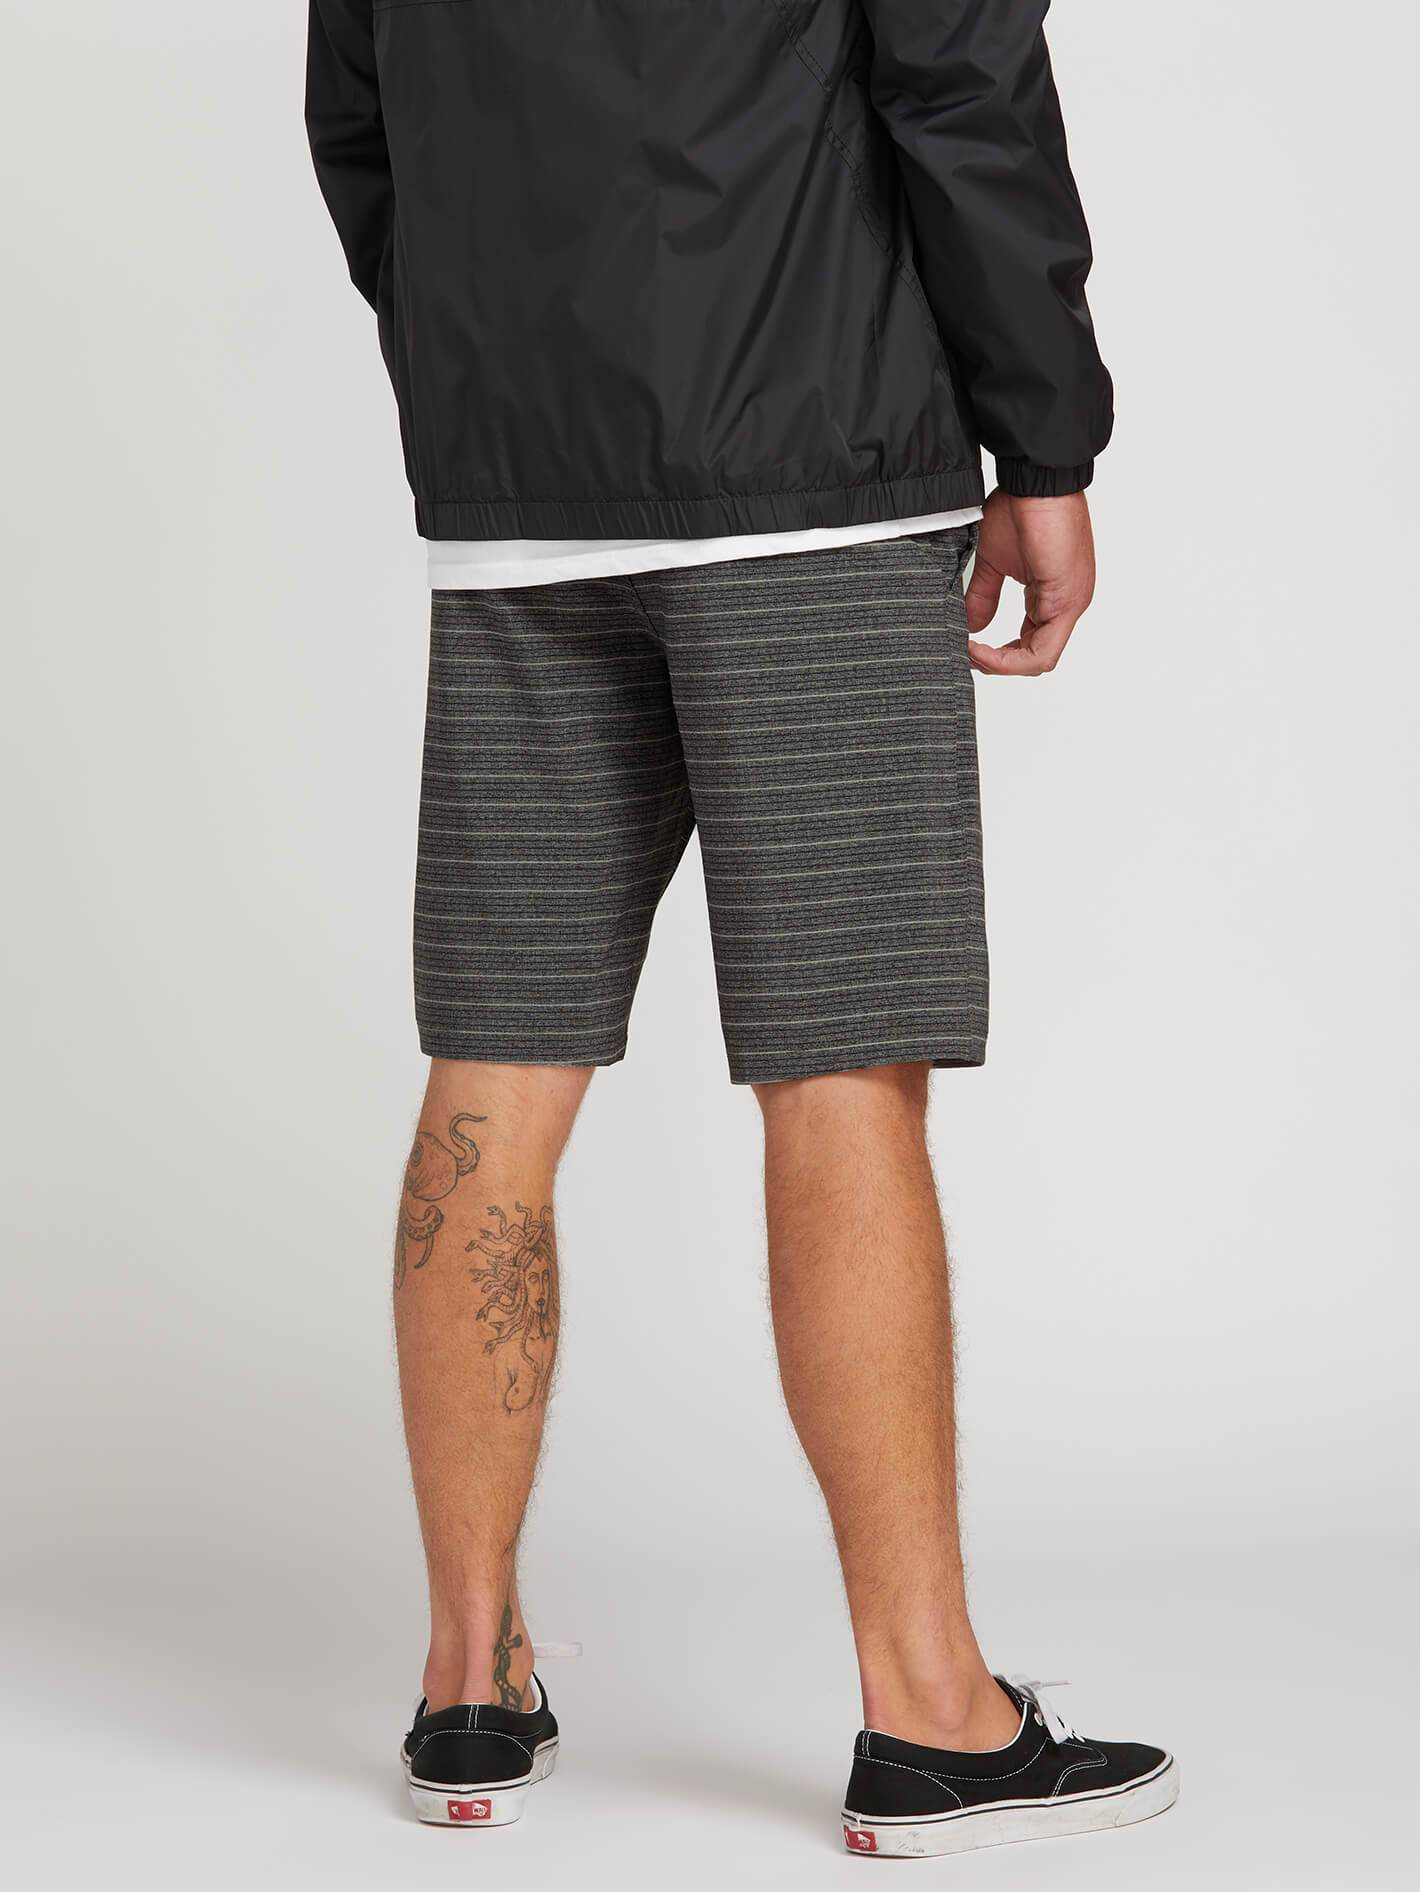 los angeles 9edc3 ce0d9 Frickin Surf N' Turf Mix Hybrid Shorts - Charcoal Heather in CHARCOAL  HEATHER - Alternative